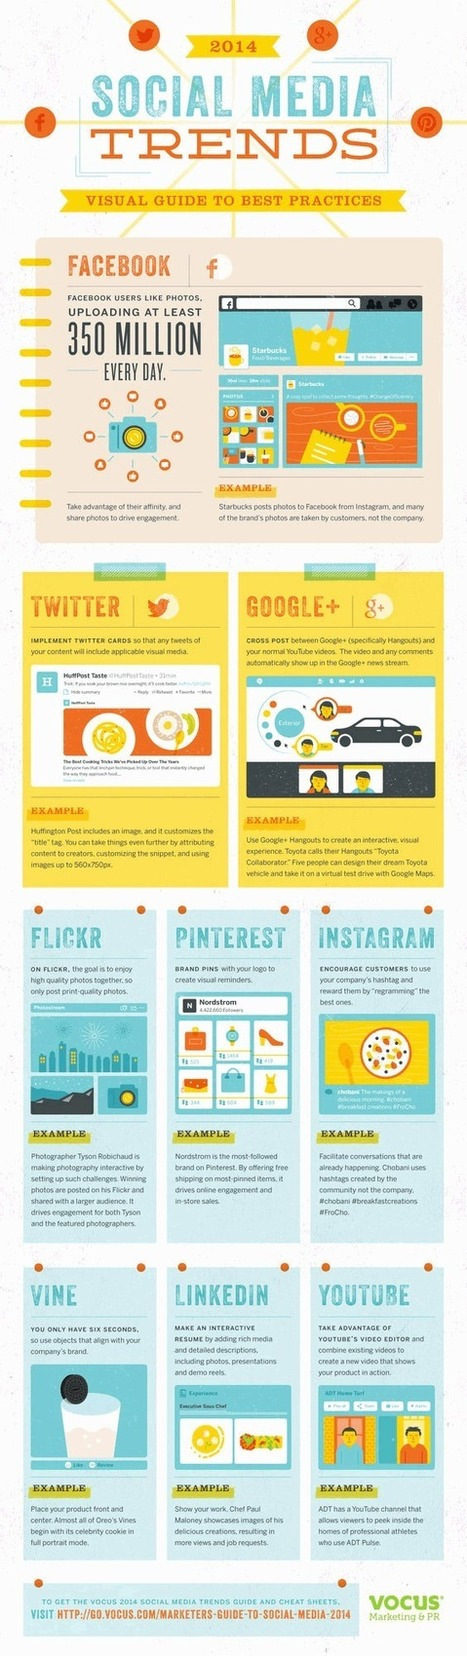 Social Media Marketing Tips 2014: A visual guide to best practices on Facebook, Twitter, Google+ and more | New media marketing and communications | Scoop.it